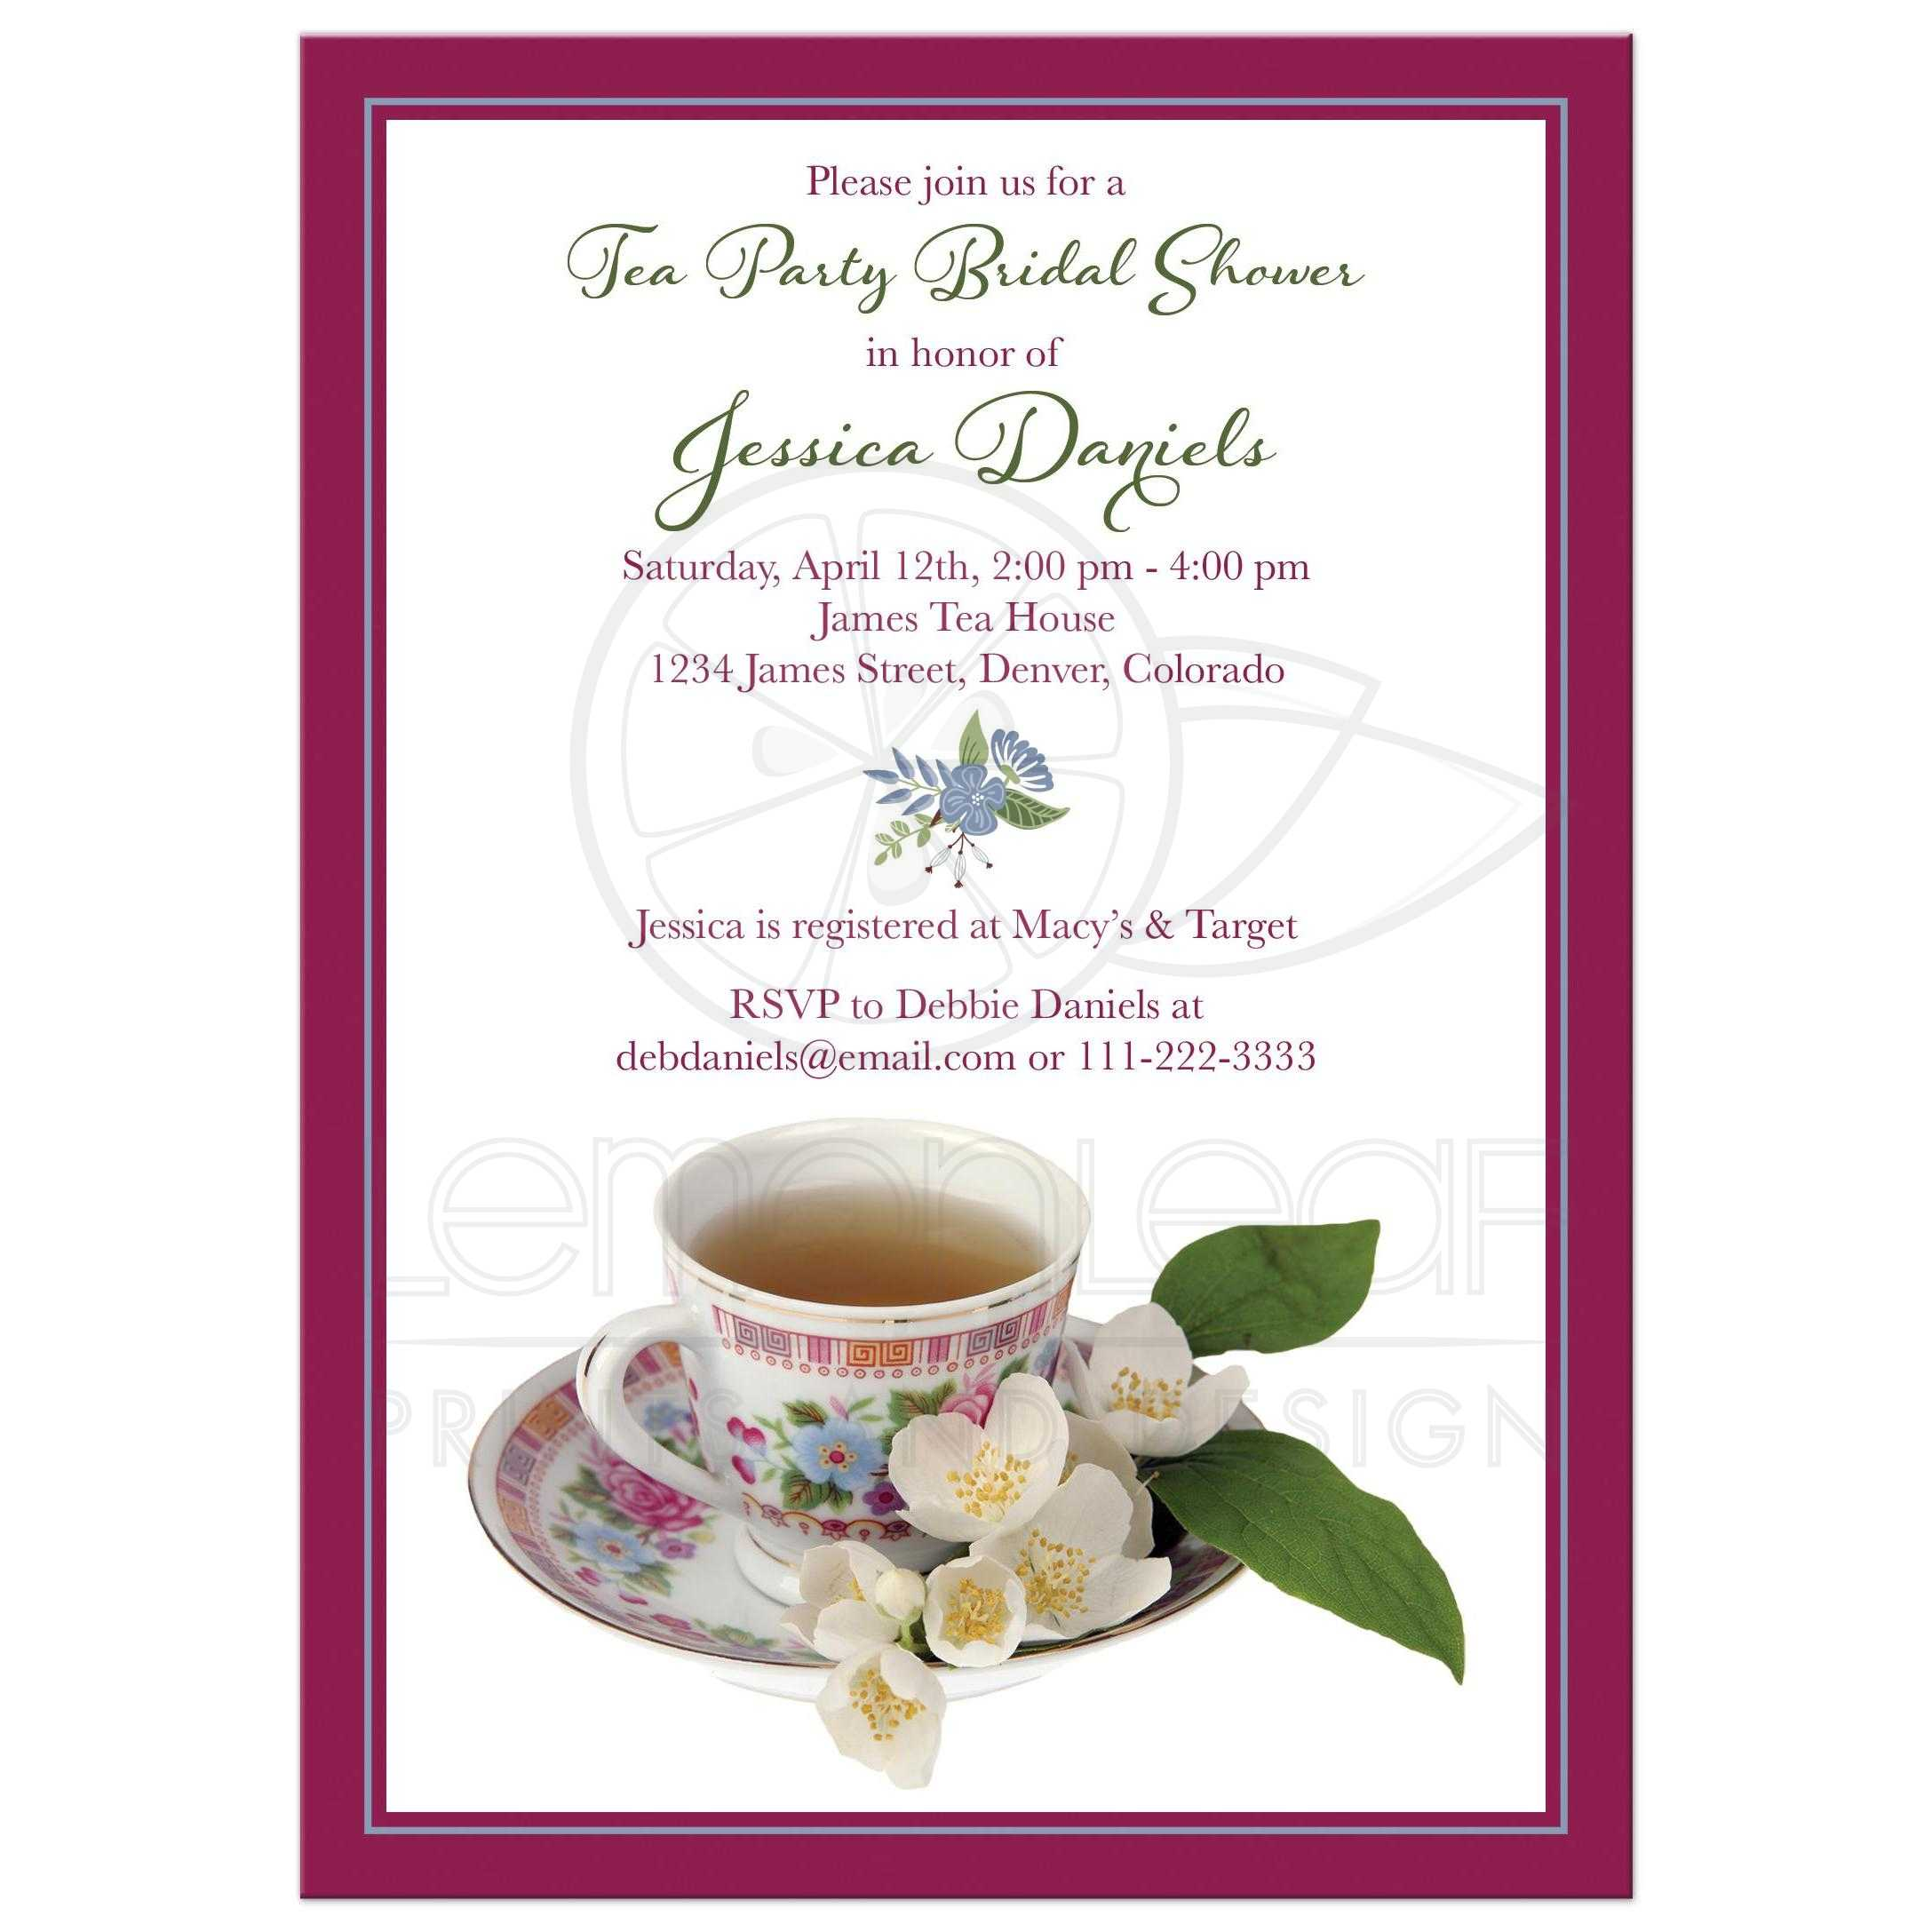 Vintage Tea Party Bridal Shower Invitation China Teacup Flowers